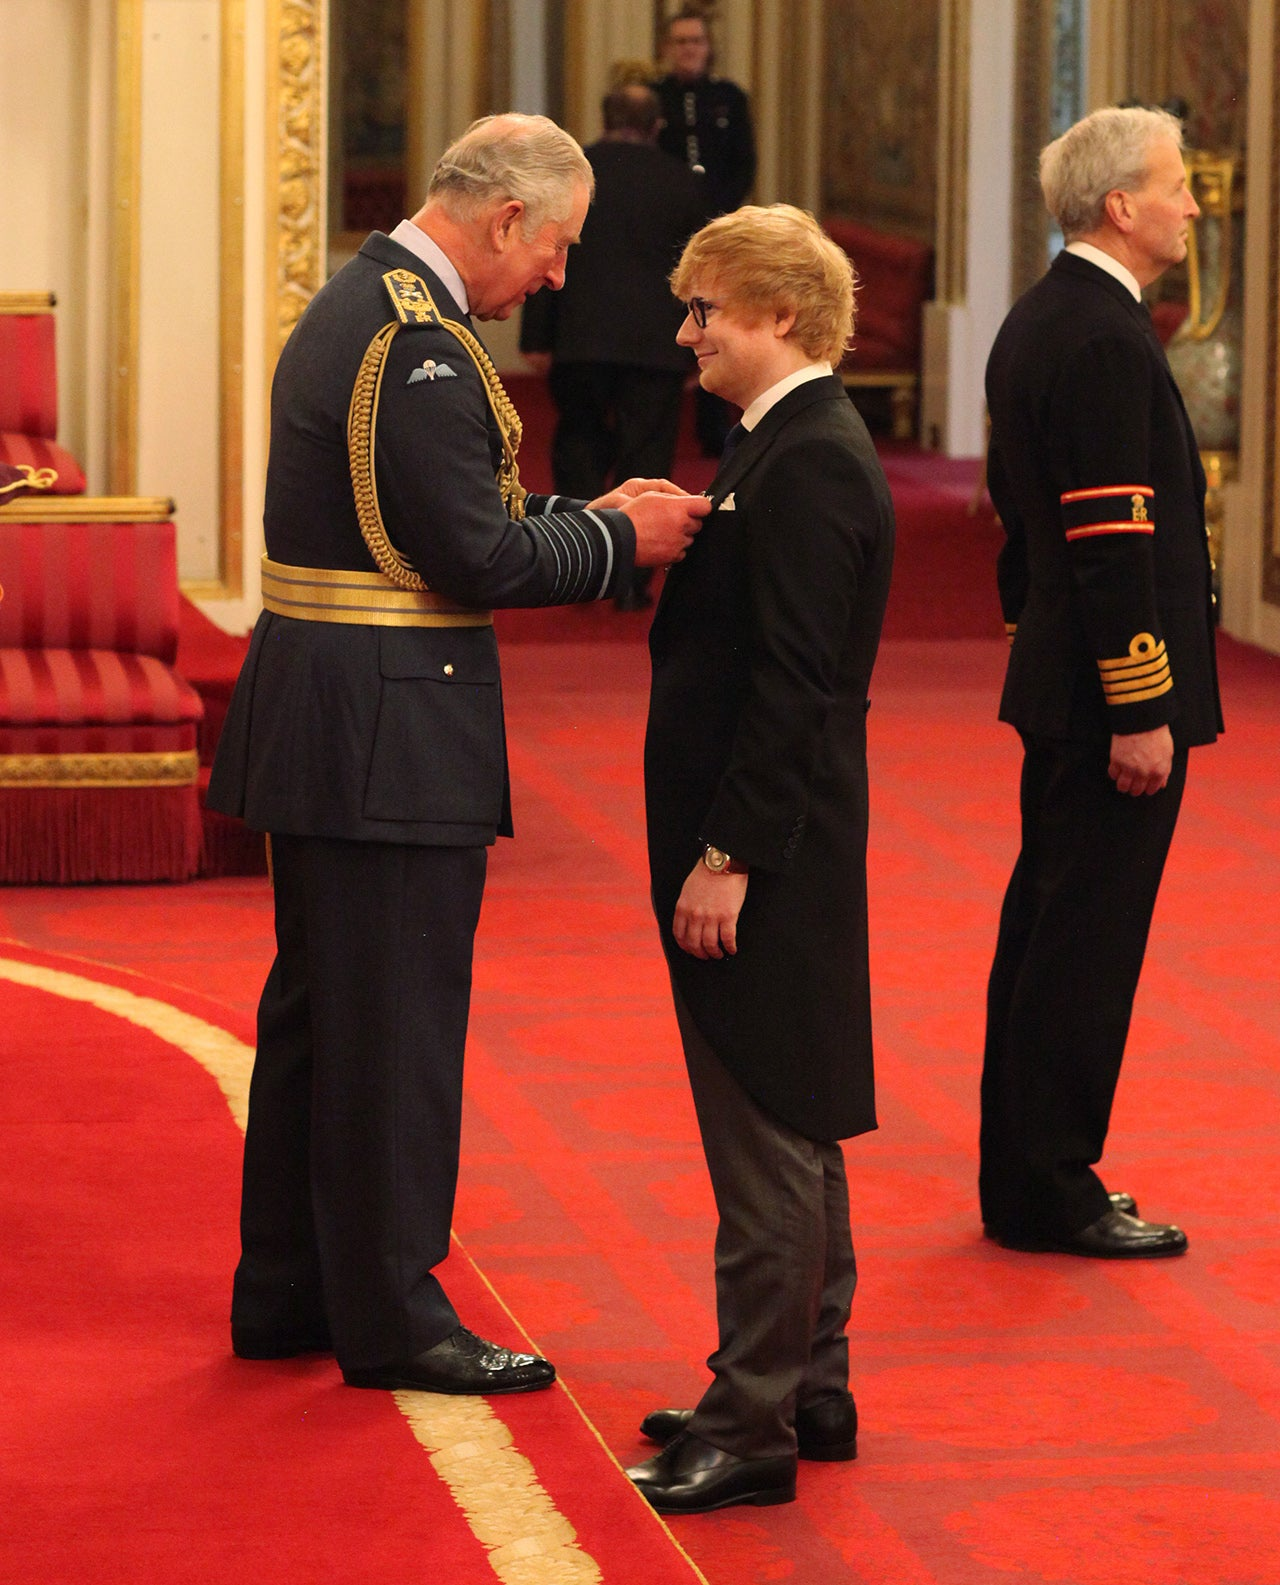 Ed Sheeran picks up MBE from Prince Charles at Buckingham Palace